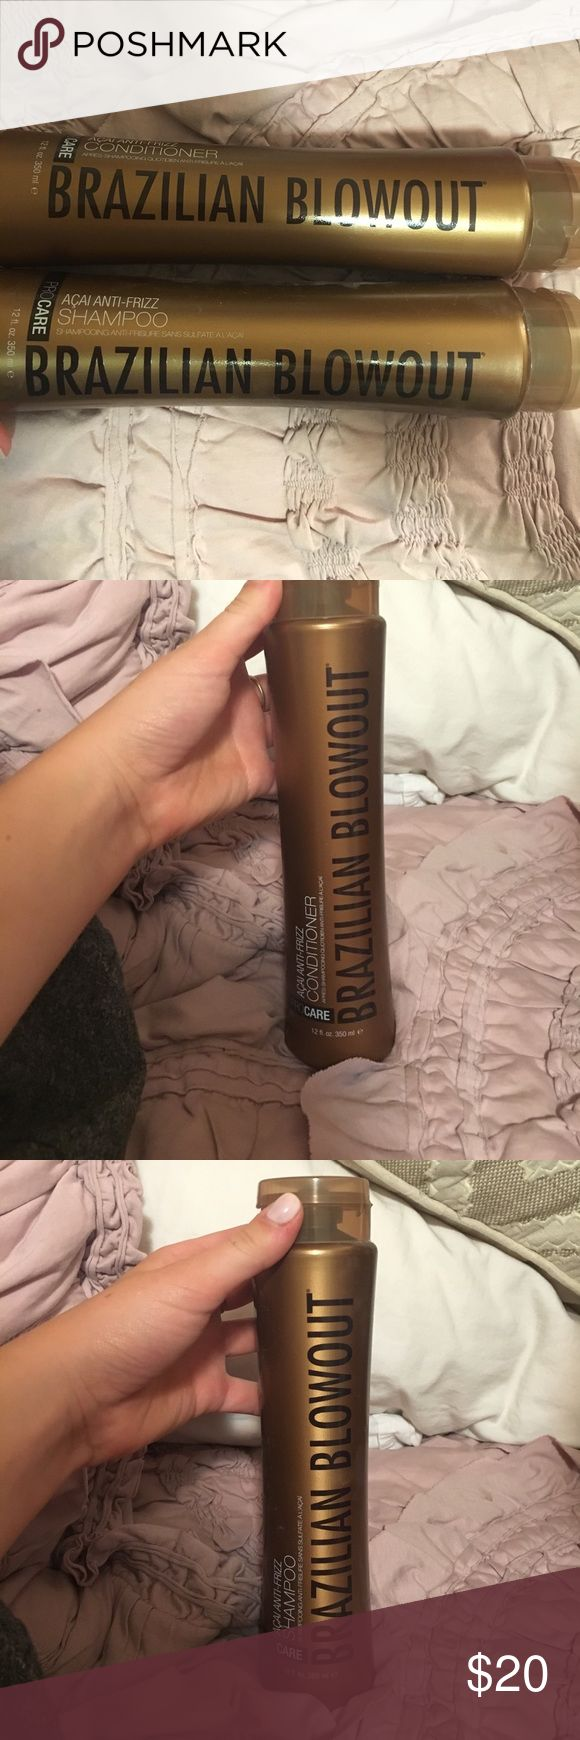 Brazilian Blowout Shampoo and Conditioner NWT Never been used Brazilian blowout shampoo and conditioner. Willing to negotiate price. Brazillian Blowout Other